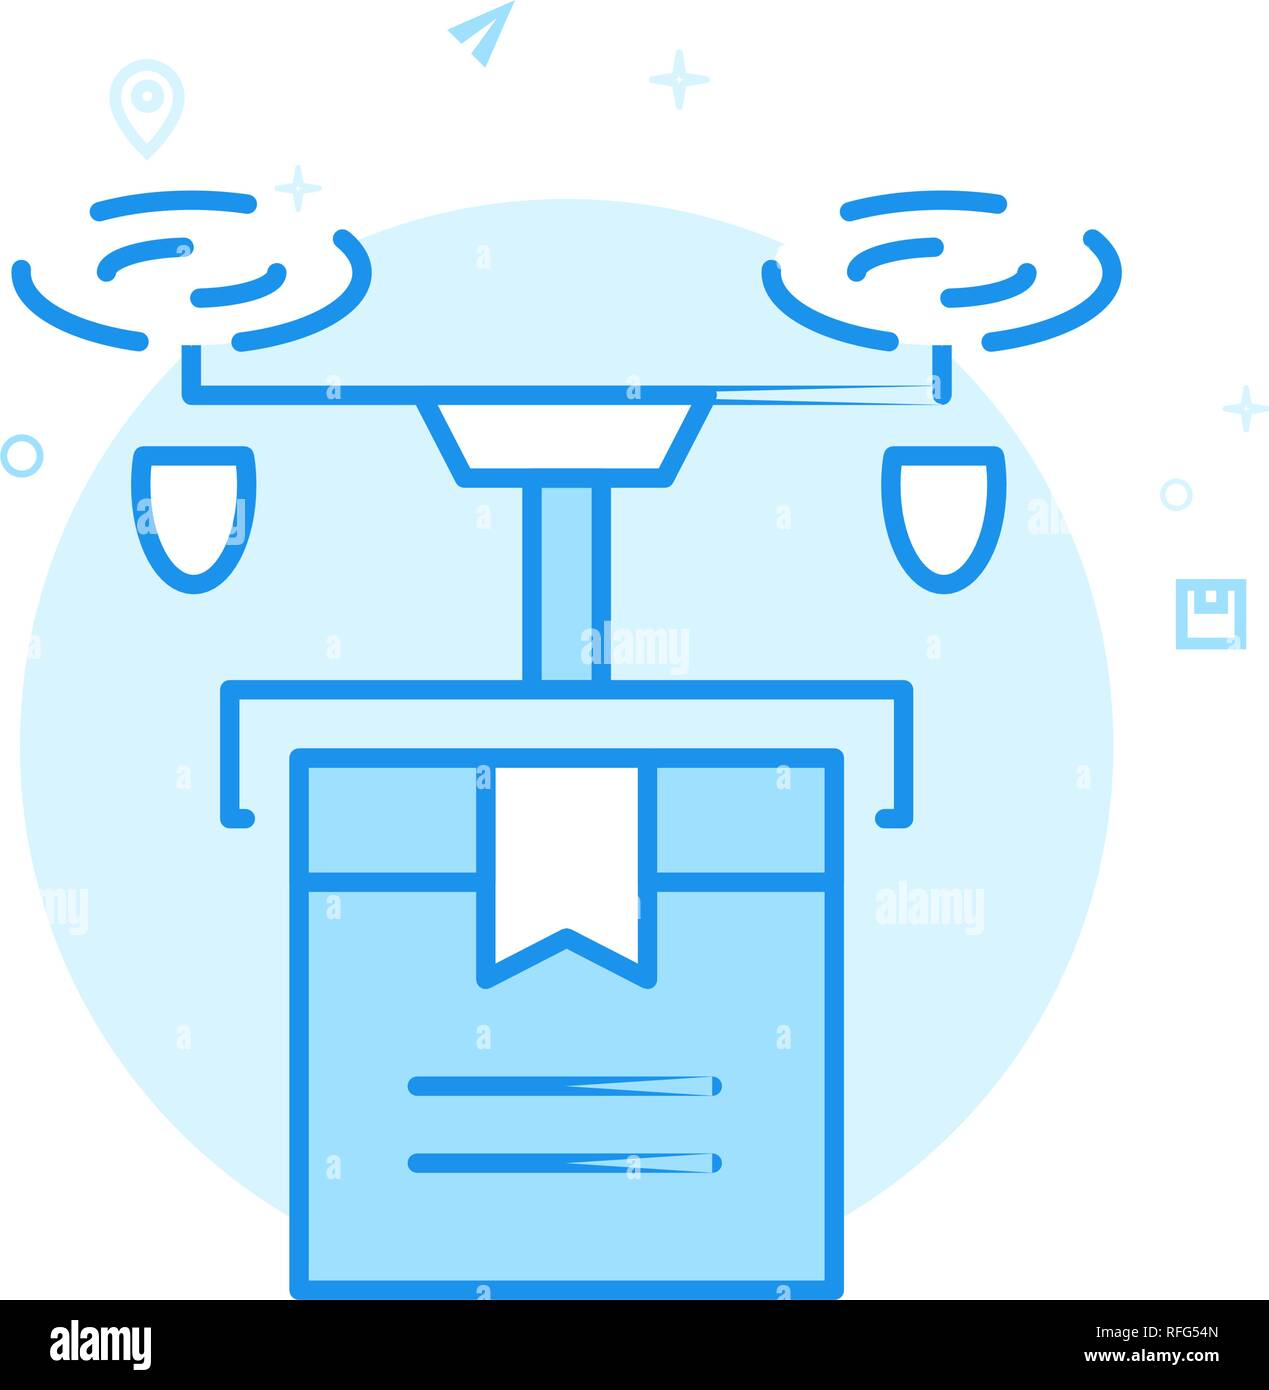 Delivery Drone Flat Vector Icon. Quadcopter Symbol, Pictogram, Sign. Light Flat Style. Blue Monochrome Design. Editable Stroke. Adjust Line Weight. - Stock Image